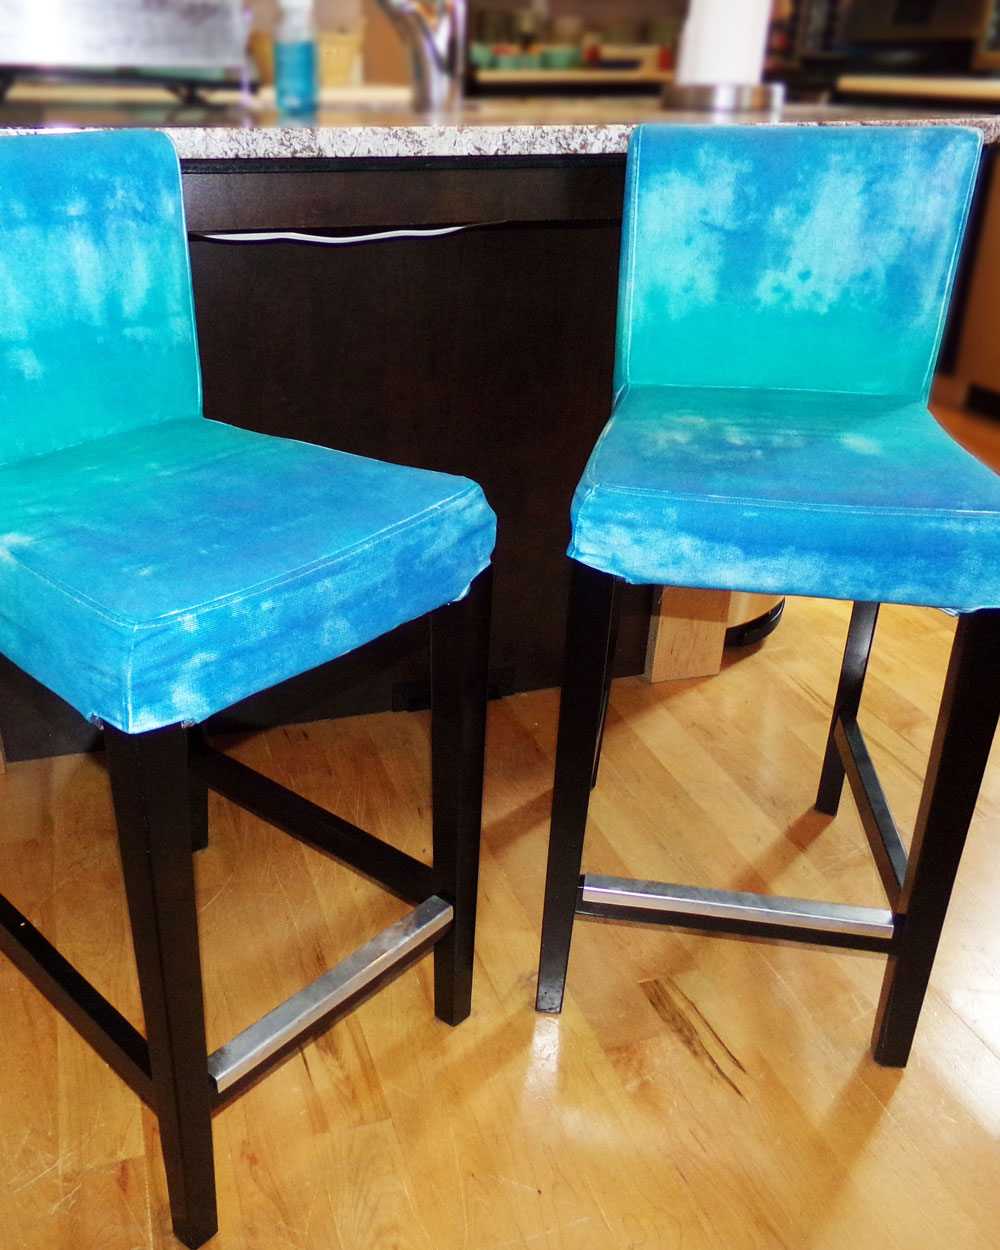 Final reveal of bar stool